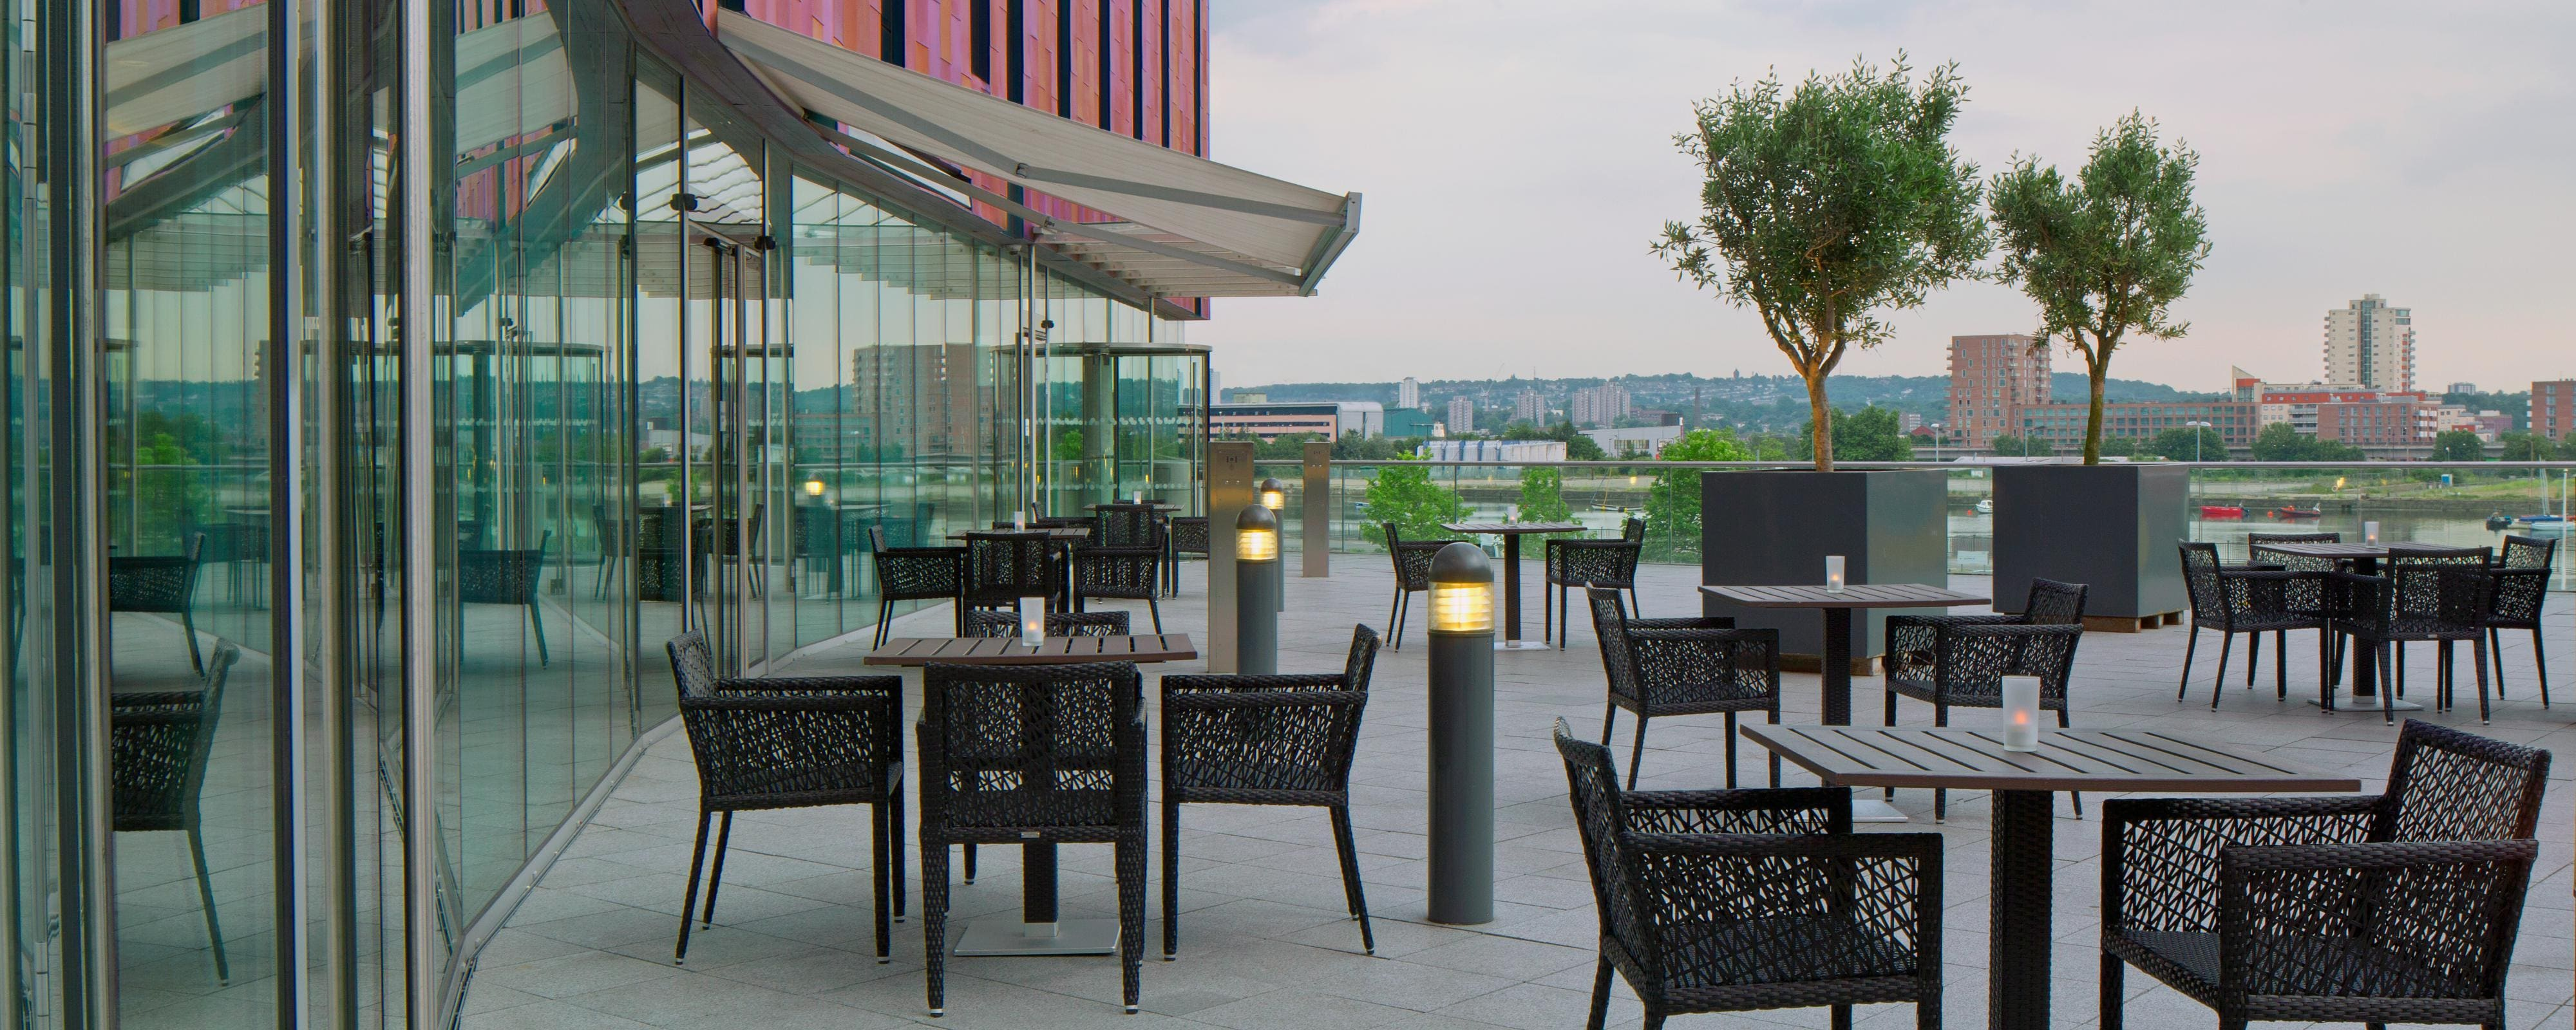 FEDE Restaurant Outdoor Terrace